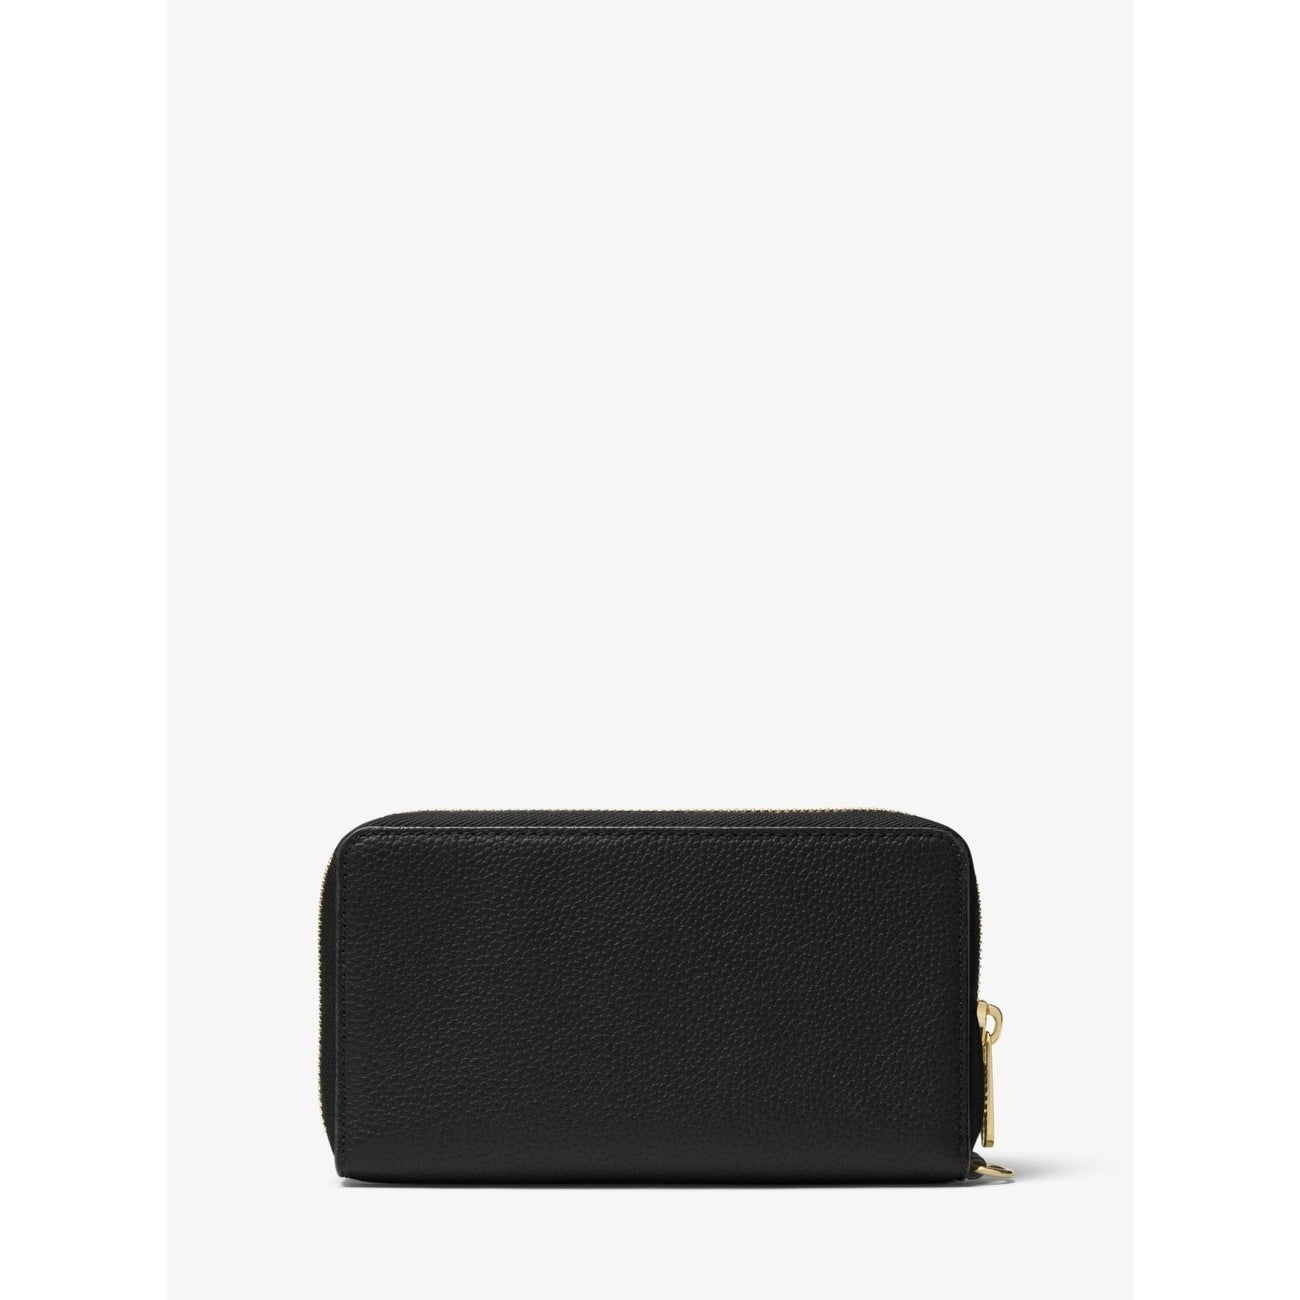 985b56f5c833 Shop MICHAEL Michael Kors Mercer Large Flat Multi Function Phone Case Black  - On Sale - Free Shipping Today - Overstock - 21533094